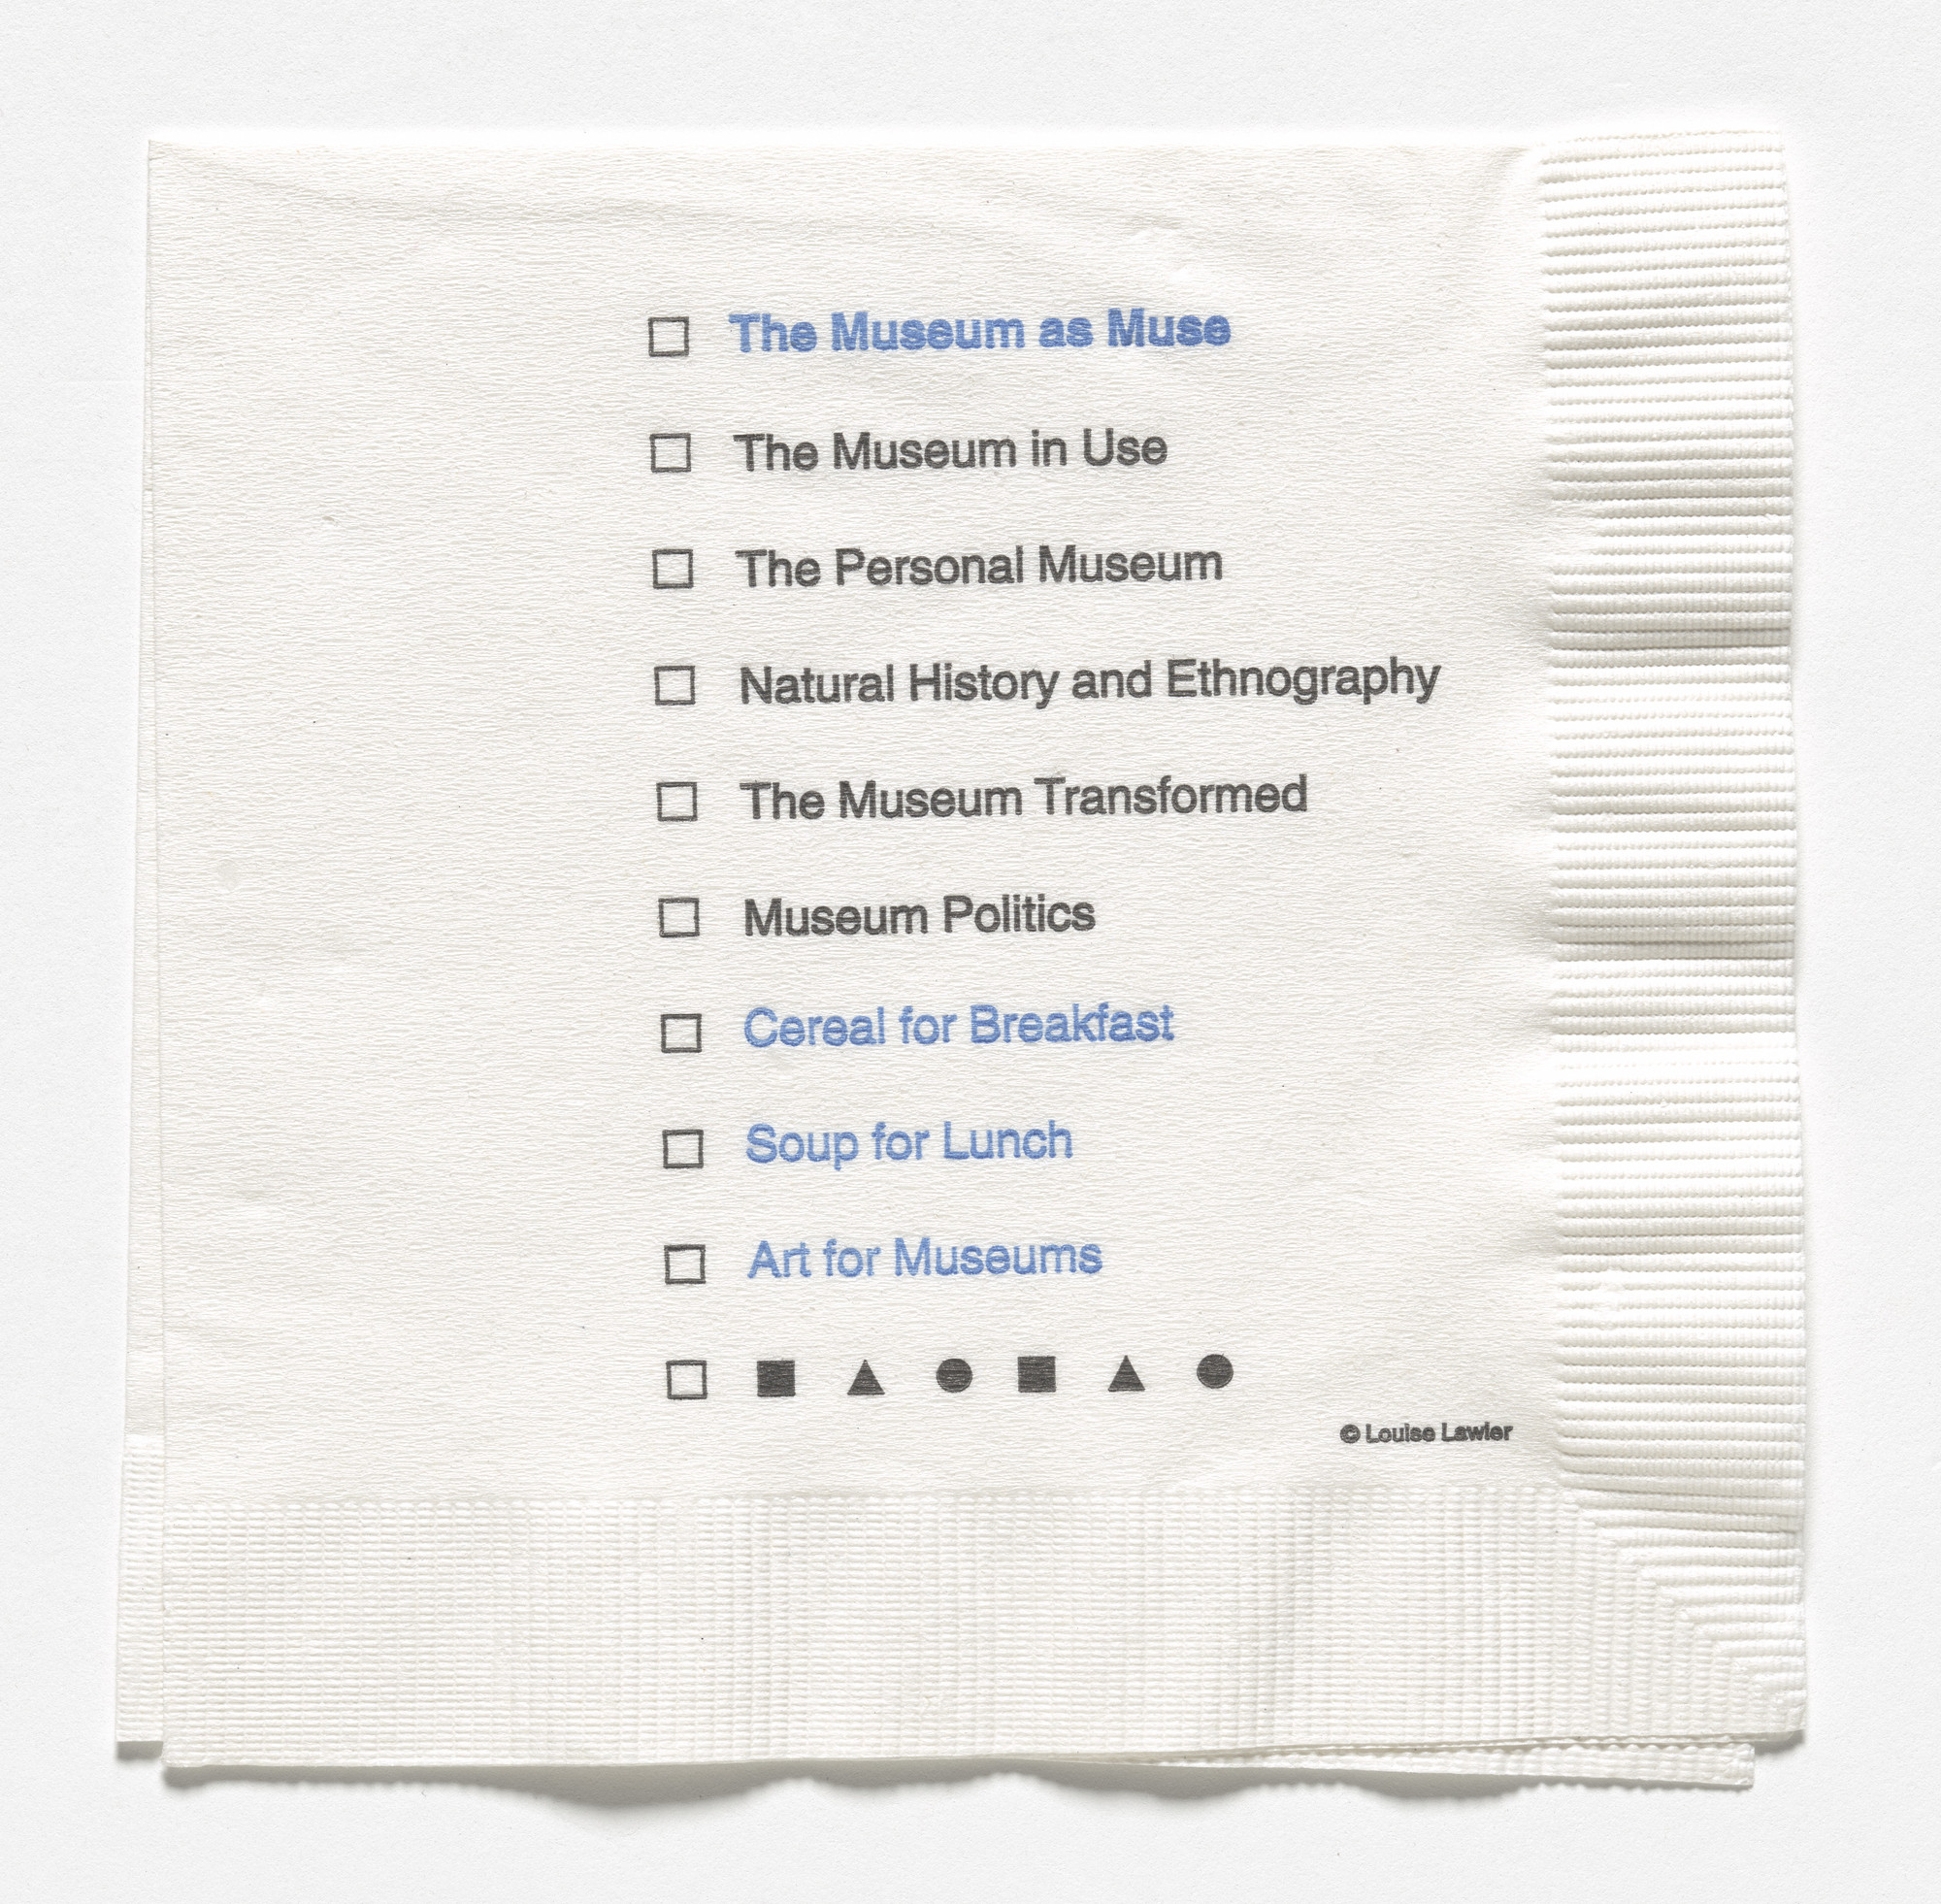 Louise Lawler. Napkin for The Museum as Muse: Artists Reflect, The Museum of Modern Art, New York, March 14–June 1, 1999. 1999